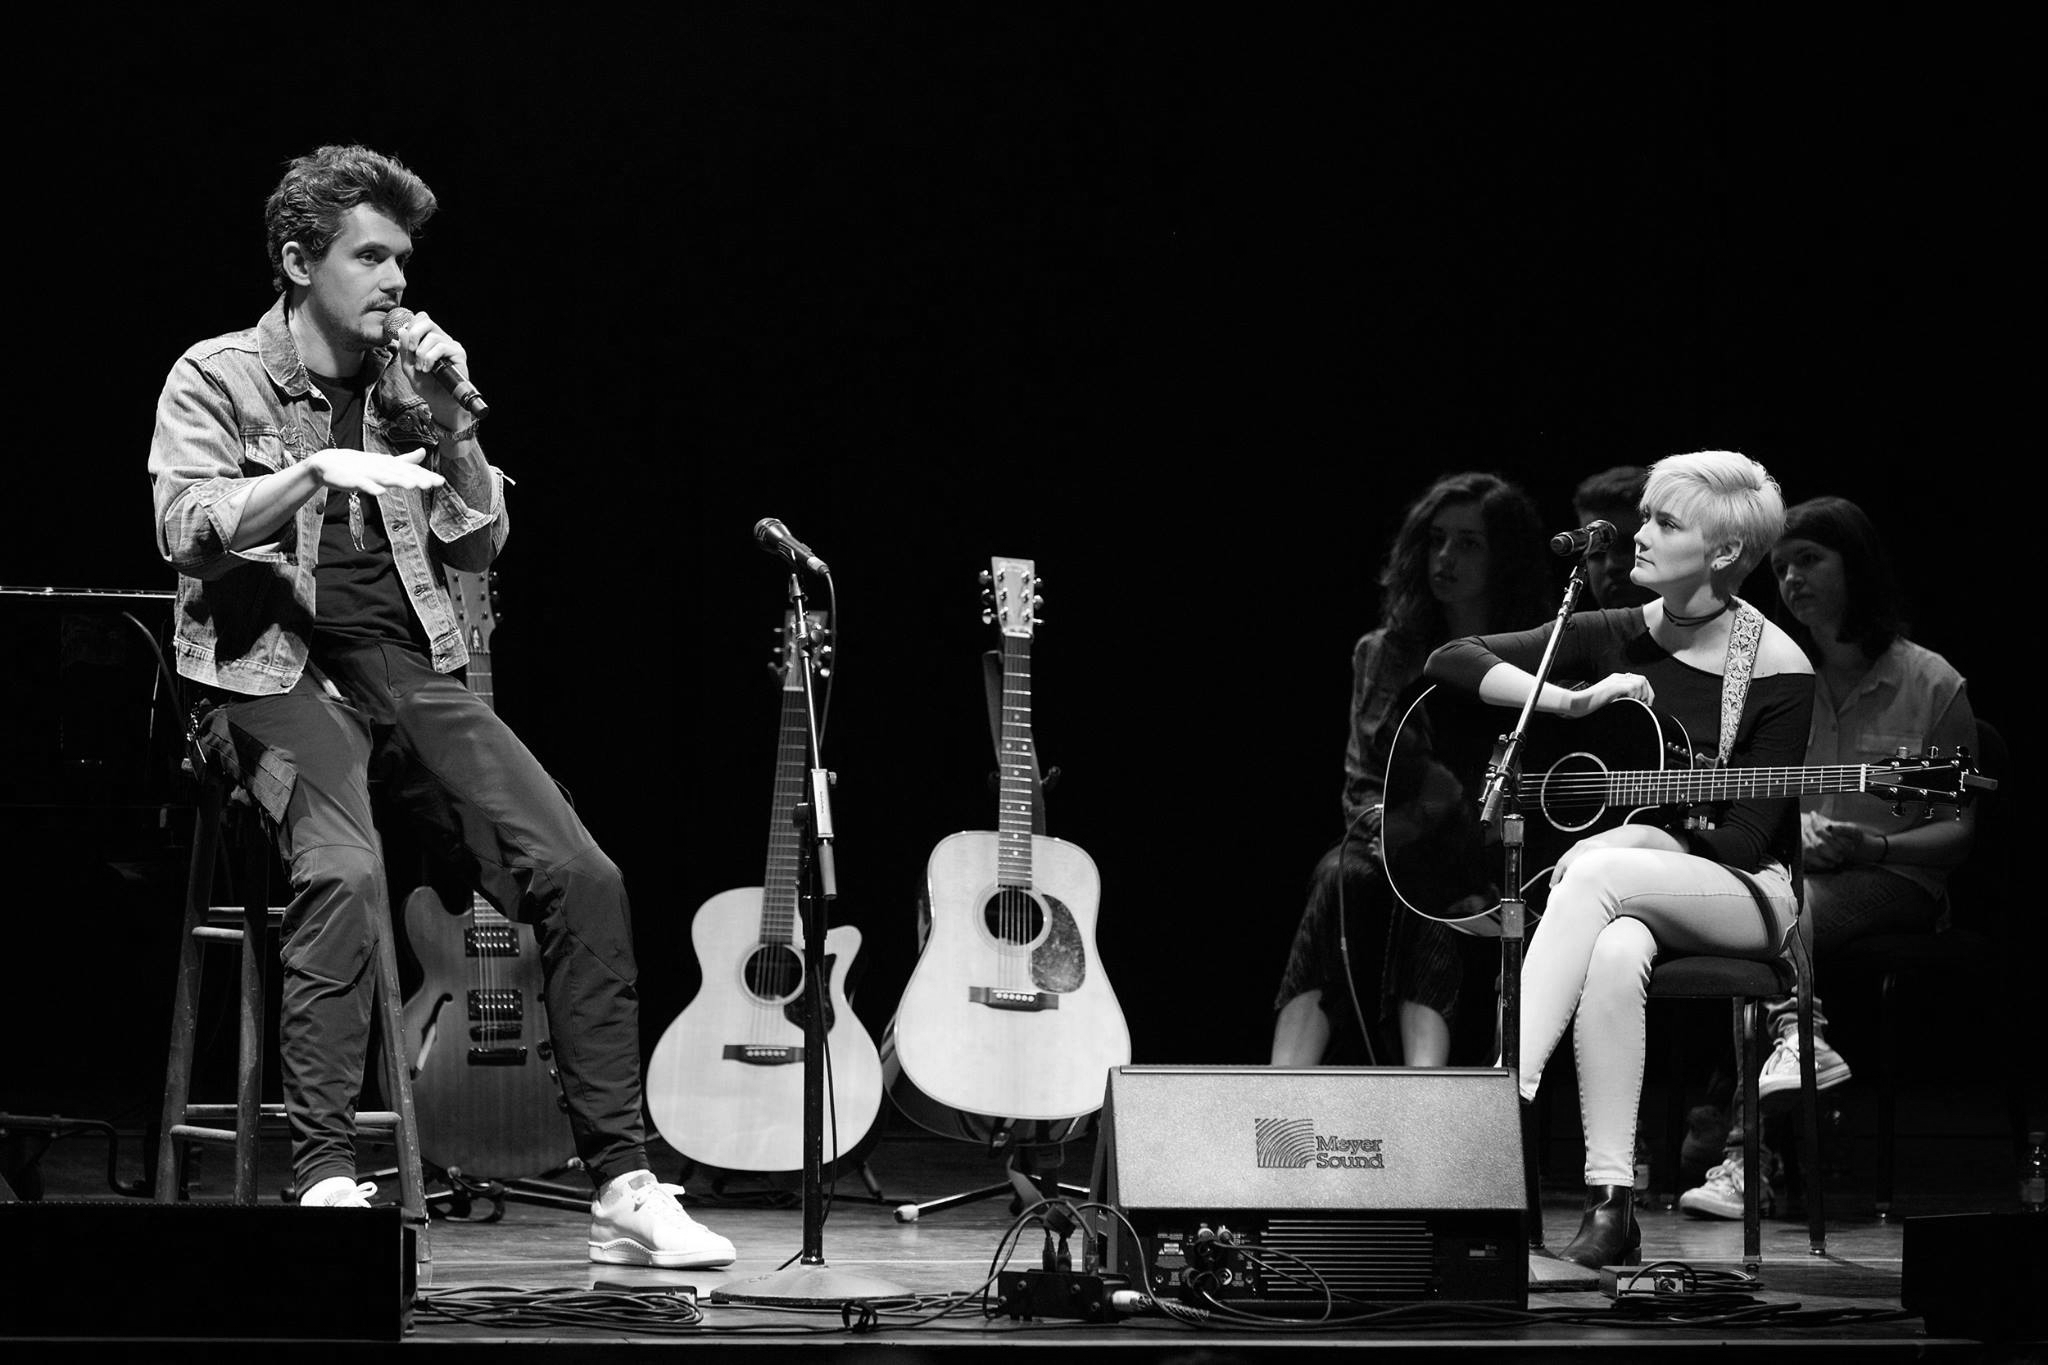 Virago performing her original music with John Mayer at a Berklee College of Music master class. Check out the press coverage below     The Boston Globe    Cleveland Scene Magazine    Cleveland.com    Berklee College of Music